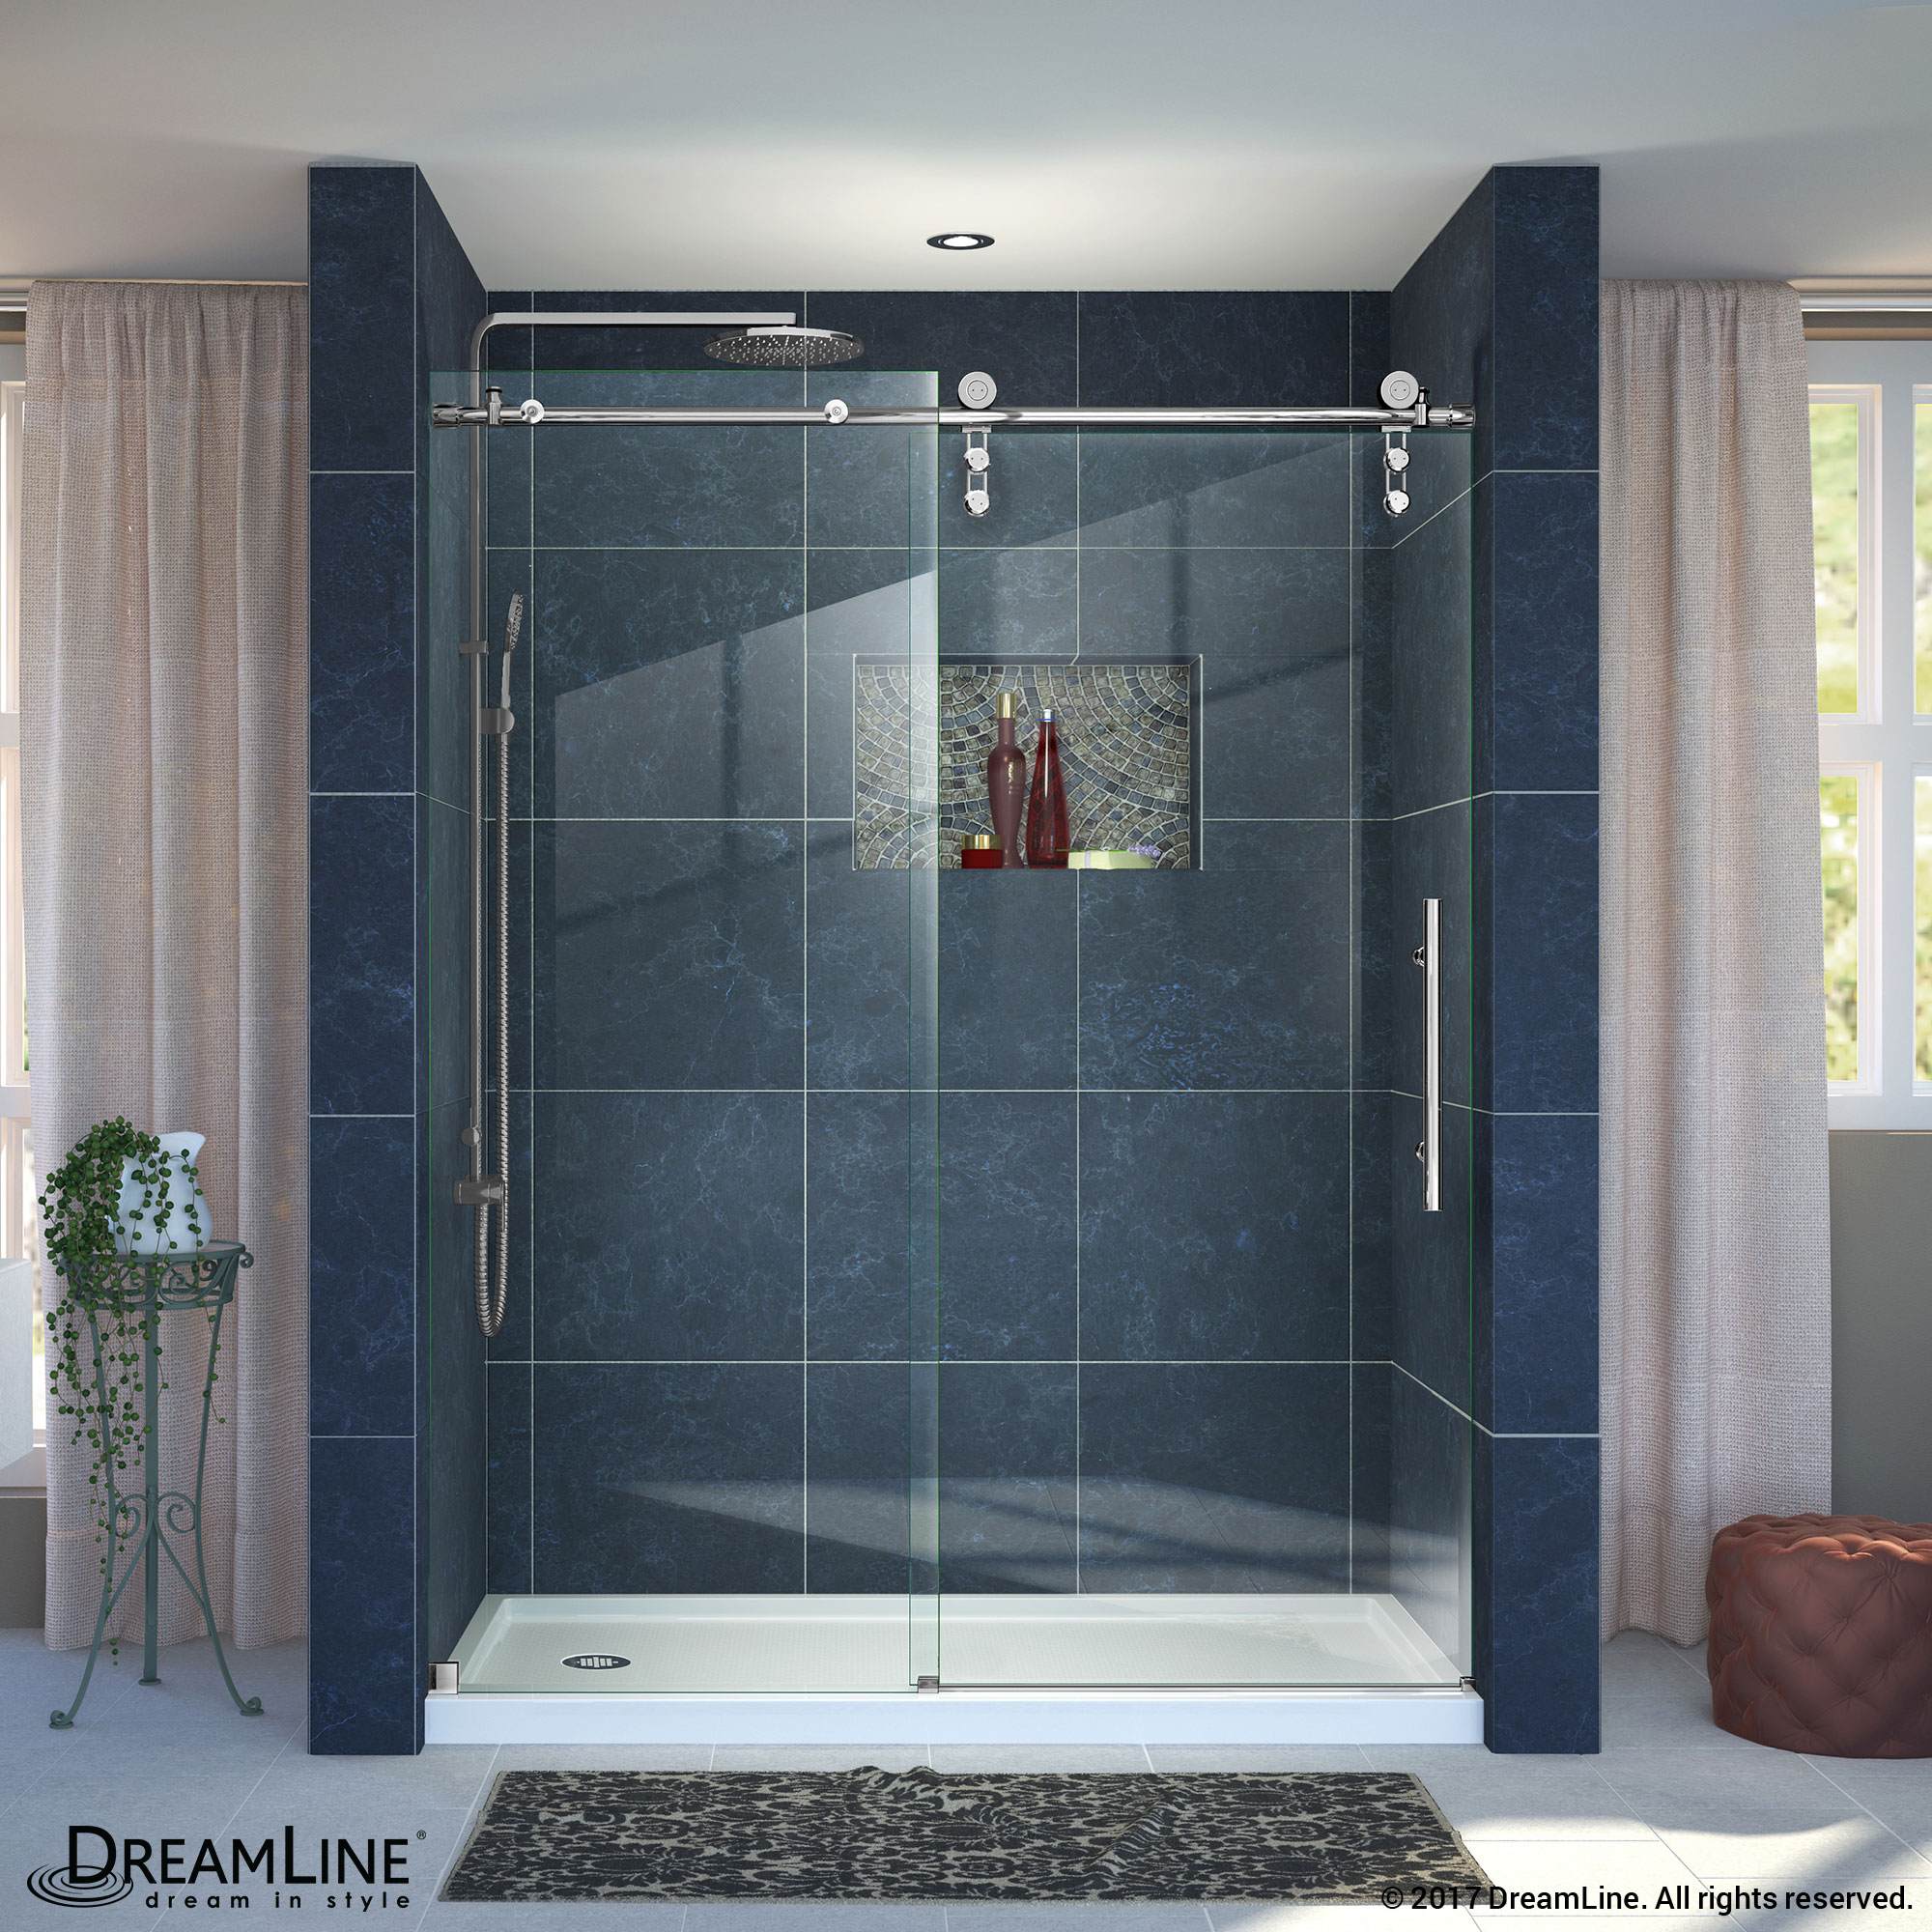 Enigma-Z Sliding Shower Door & Base (34 - 36 in.) - ACTT Kitchen & Bath